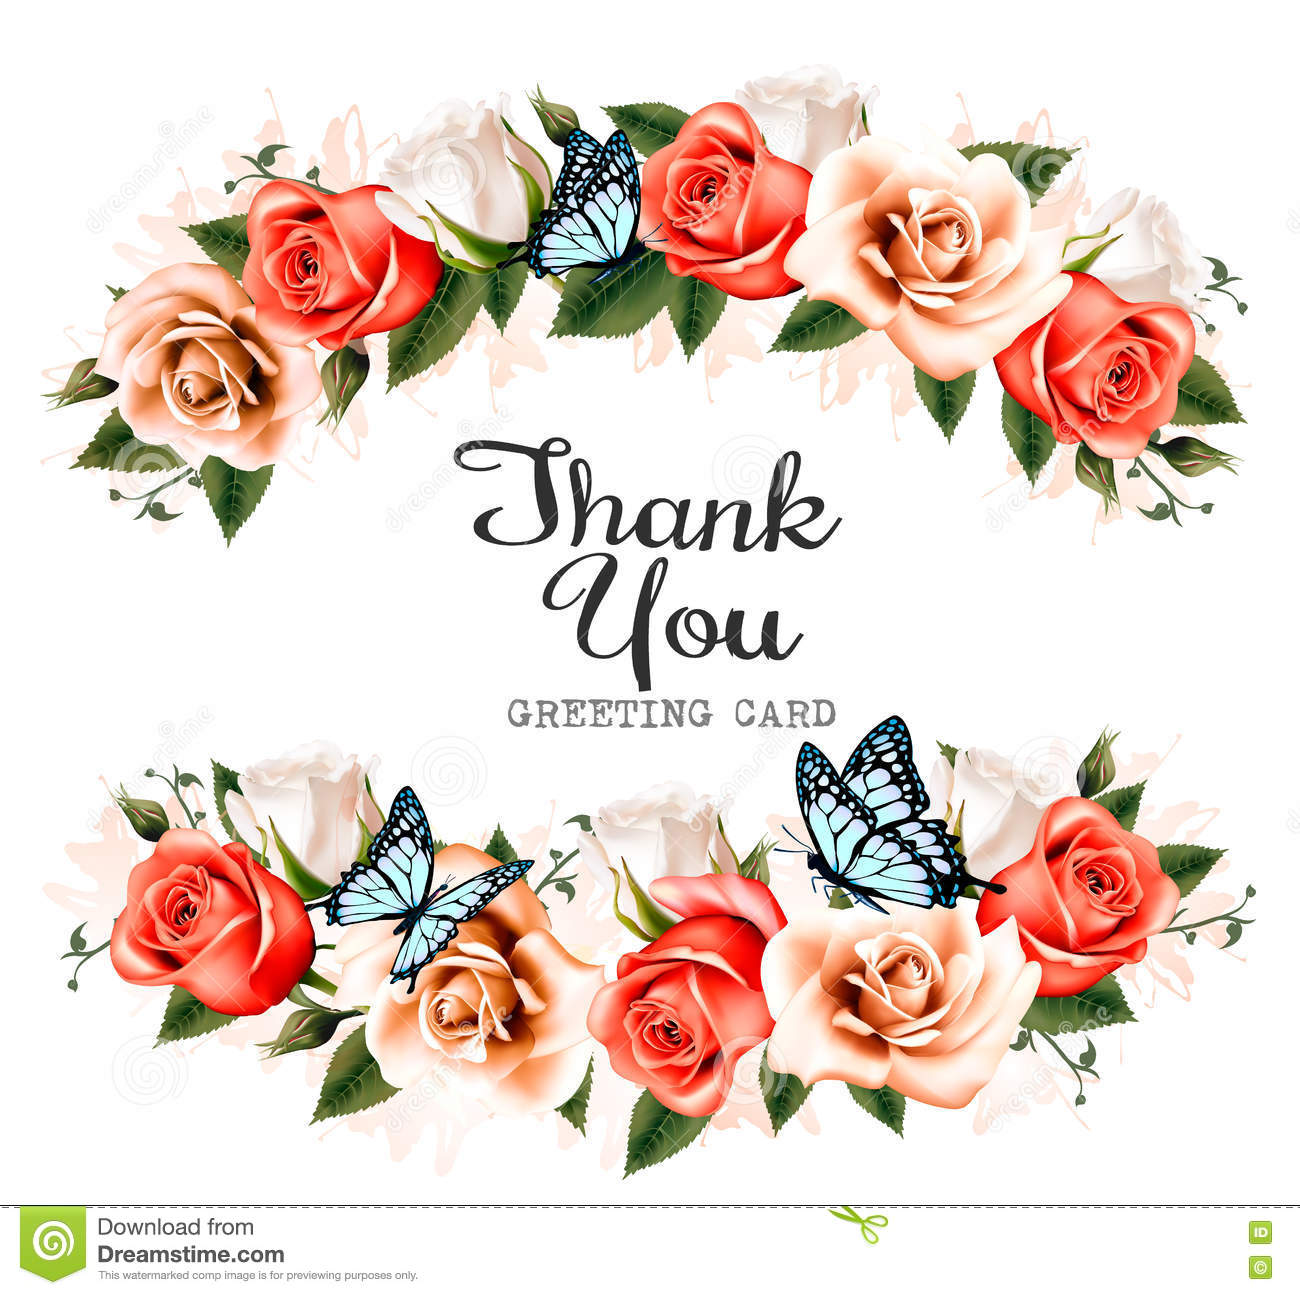 Beautiful thank you greeting card with roses and butterflies beautiful thank you greeting card with roses and butterflies kristyandbryce Choice Image